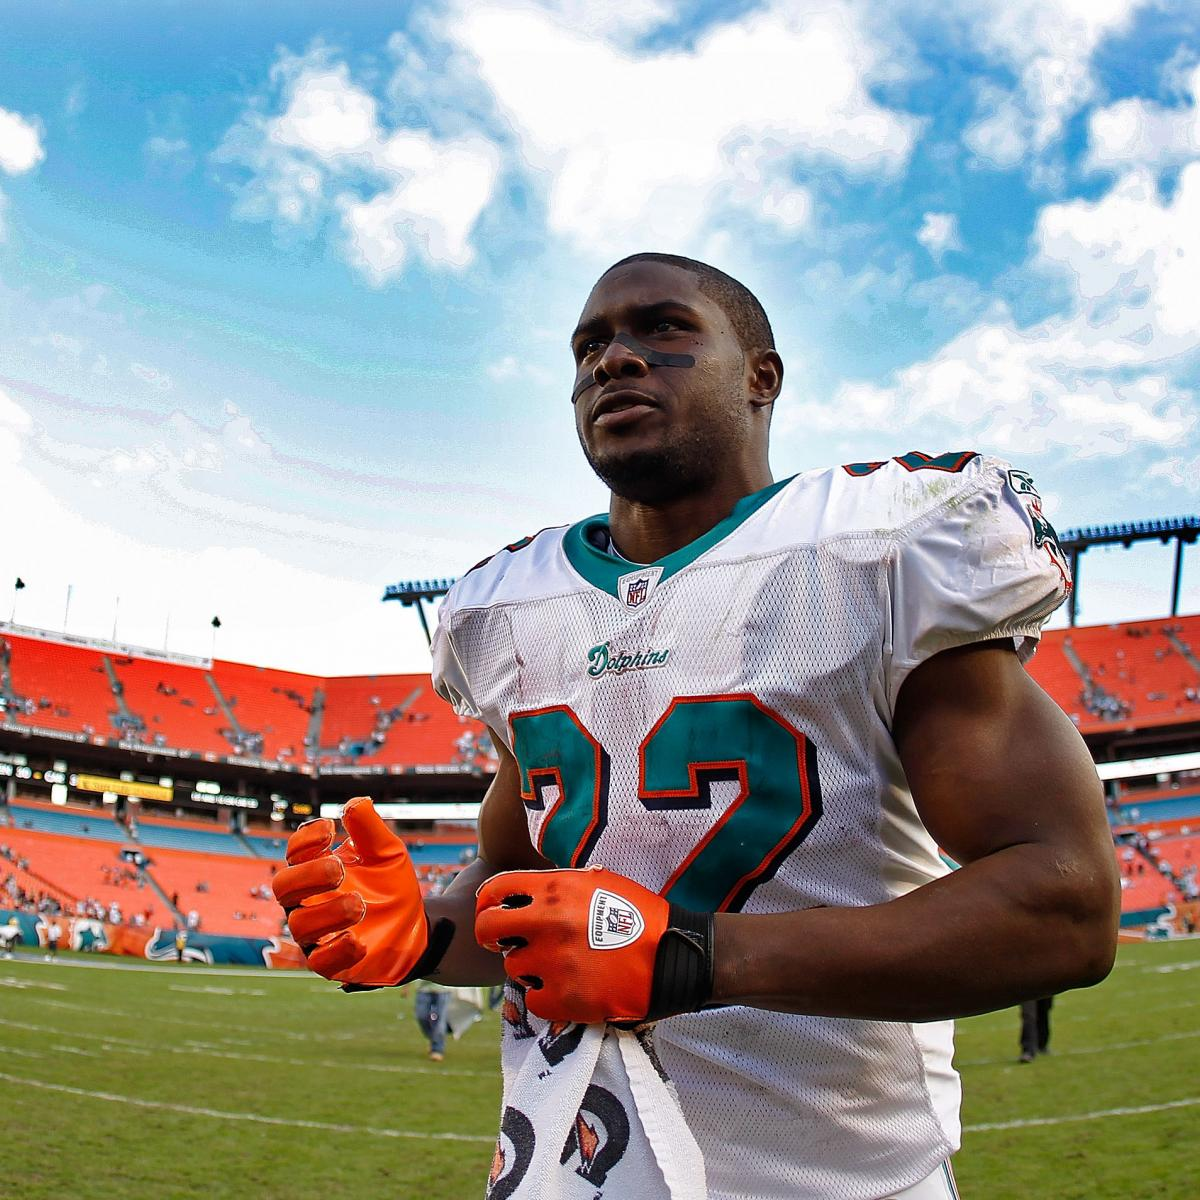 b58b2b35 2012 Miami Dolphins Schedule: Full Listing of Dates, Time and TV ...